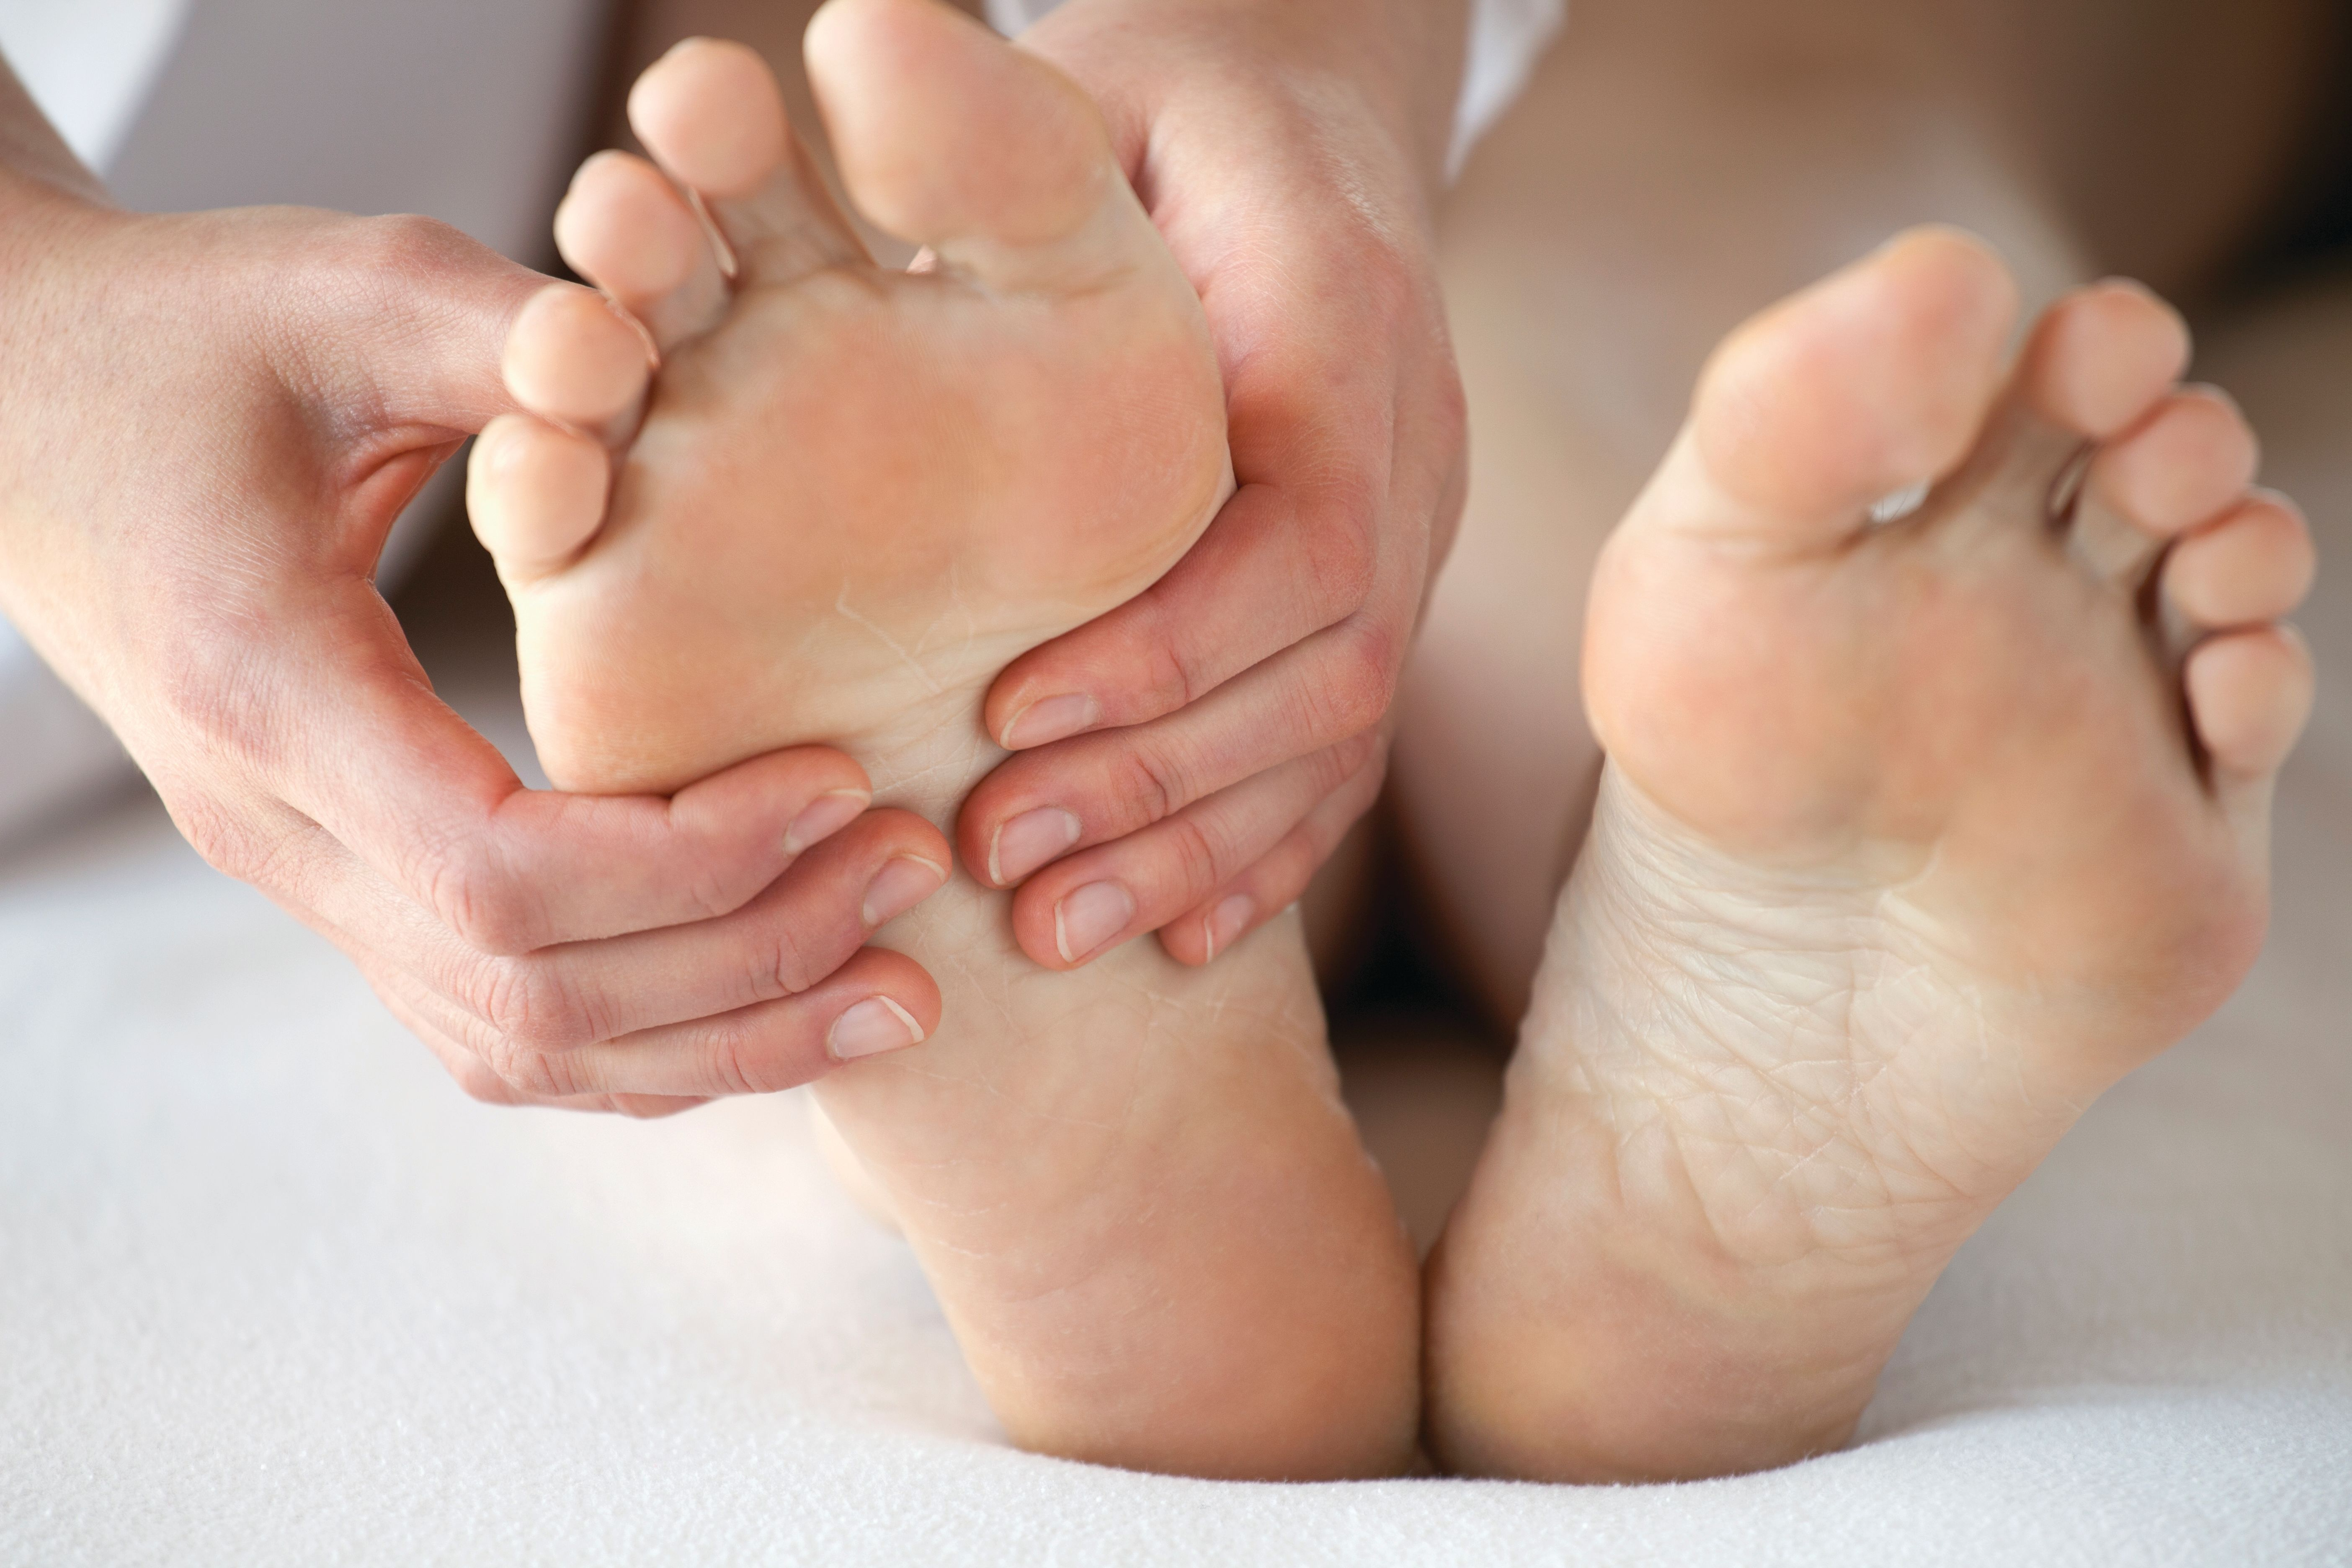 Close up of someone rubbing their bare feet